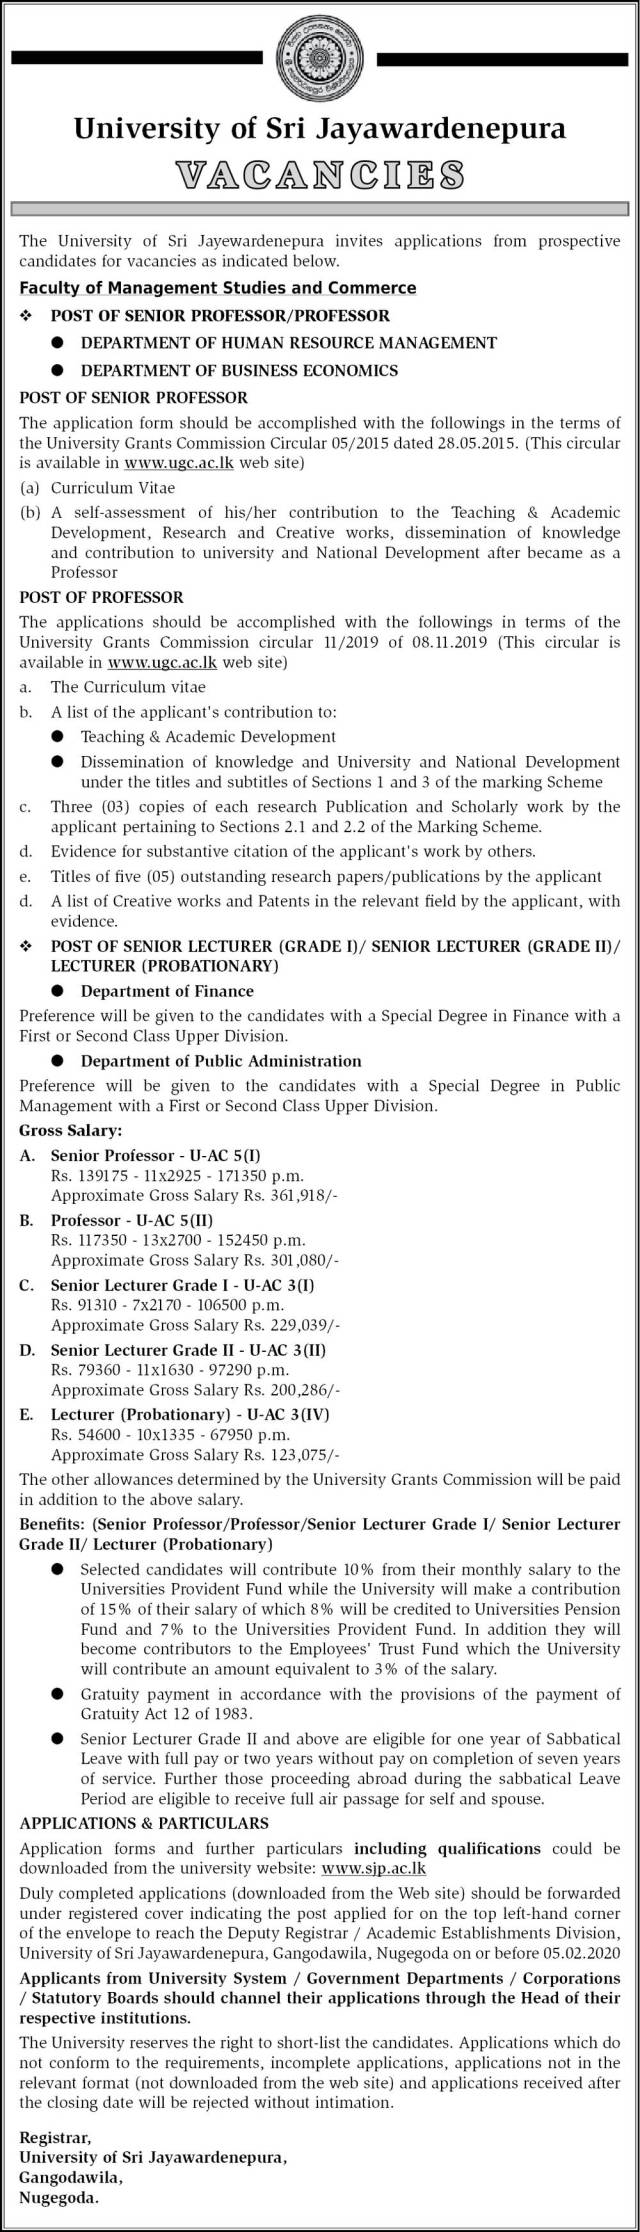 Senior Professor, Professor, Senior Lecturer, Lecturer - University of Sri Jayewardenepura